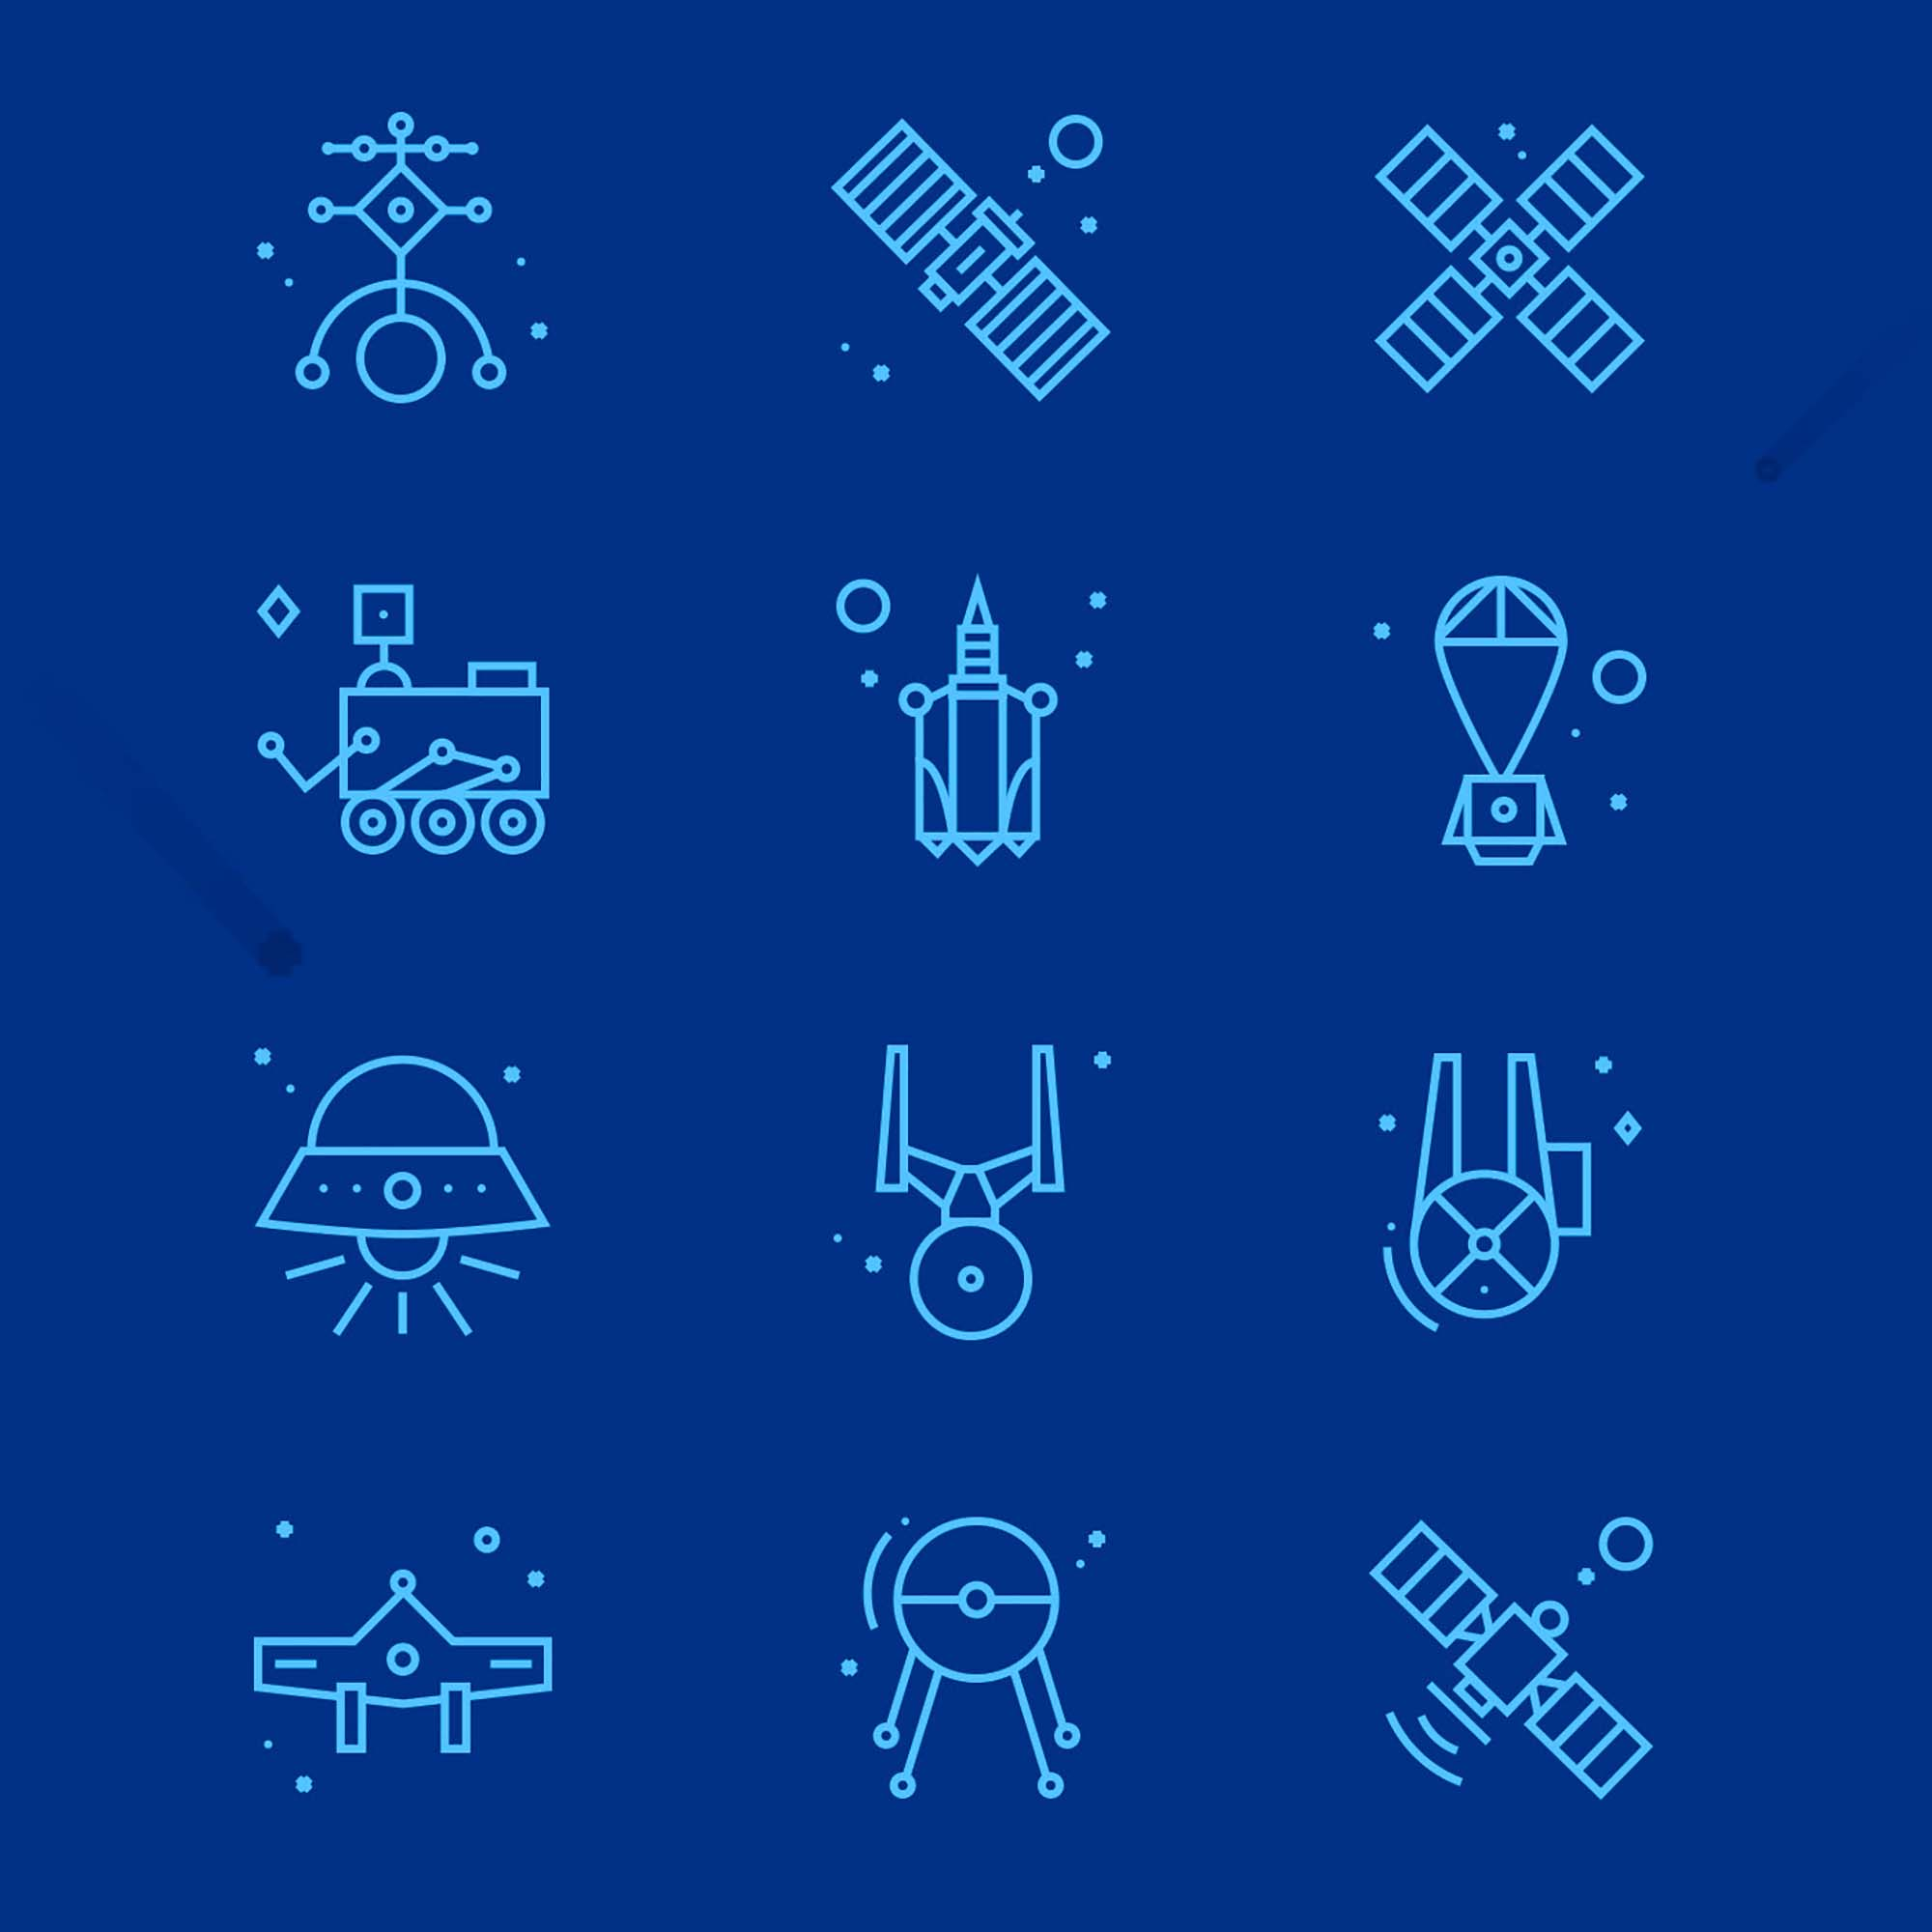 Space Iconography 2